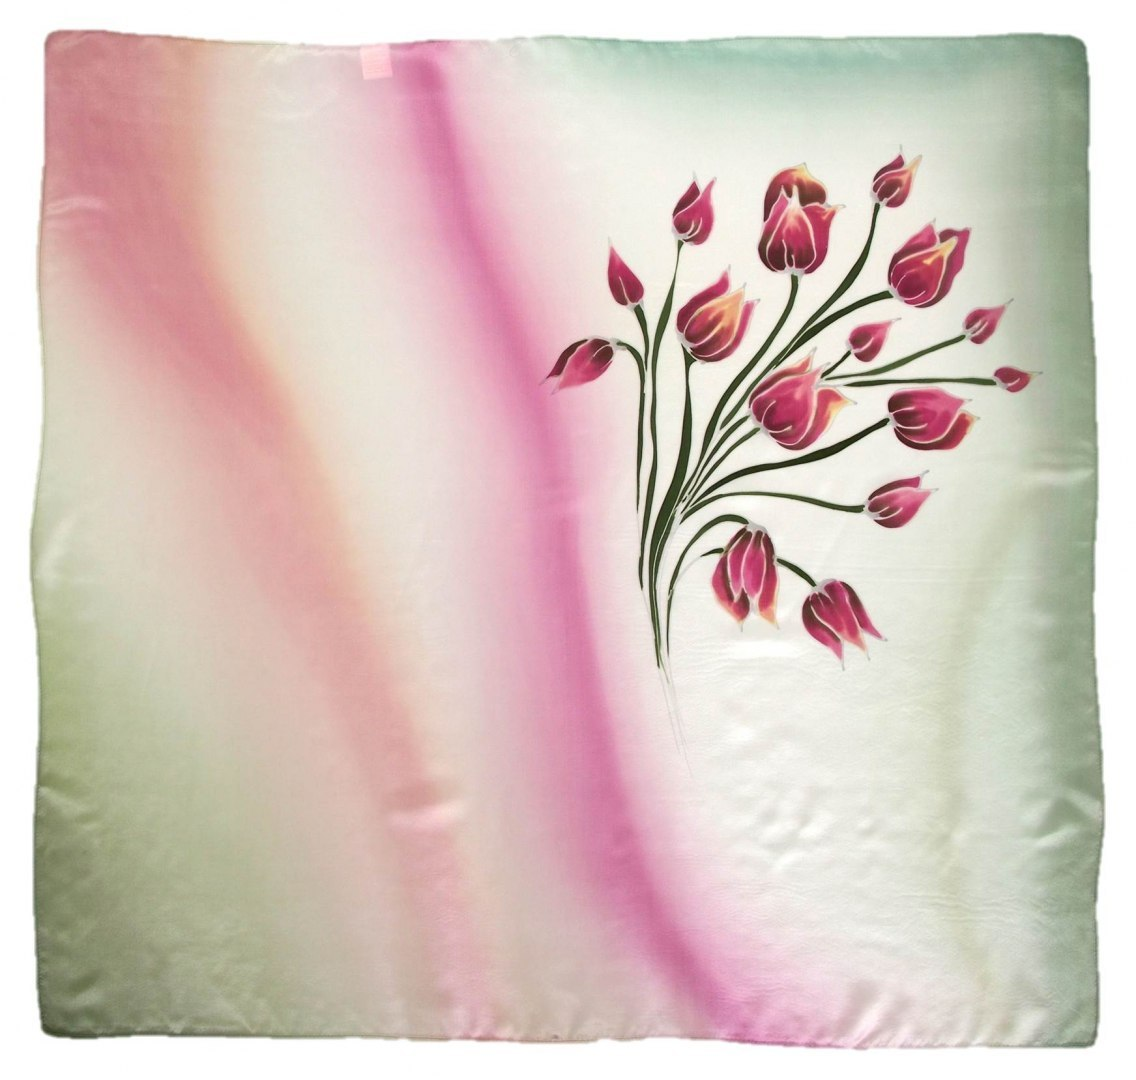 AM-463 Hand-painted silk scarf, 90x90cm